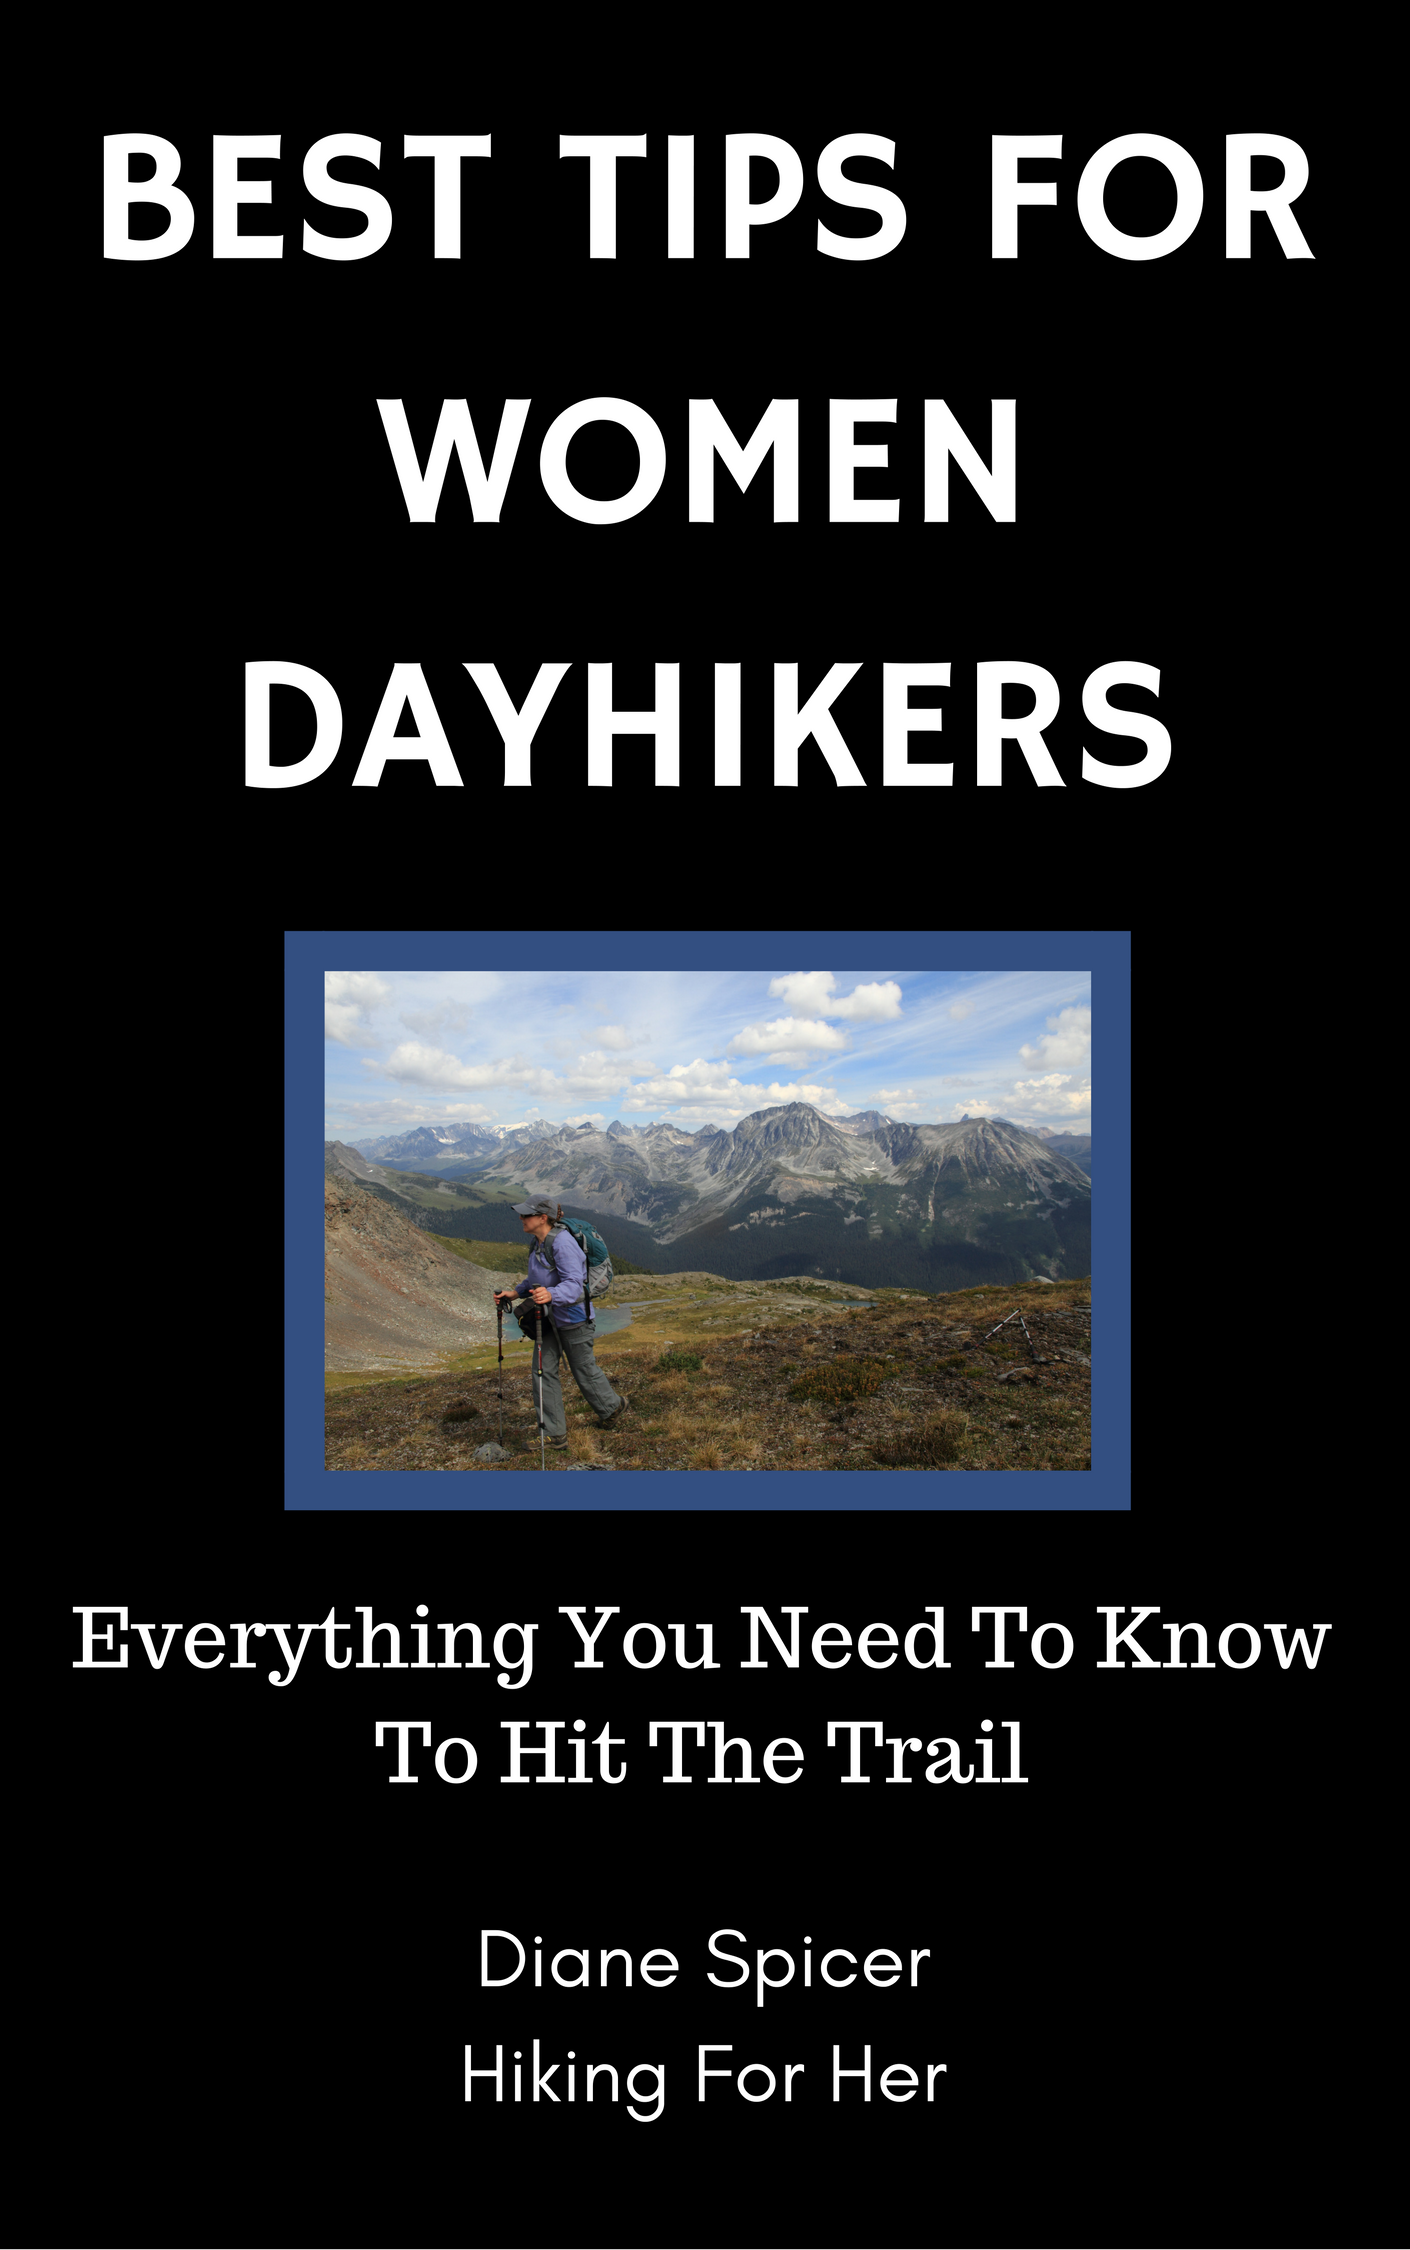 Hiking For Her's Best Tips For Women Dayhikers book will get you on the trail in safety, comfort and style. #hiking #dayhikes #hikingtips #trails #womenhikers